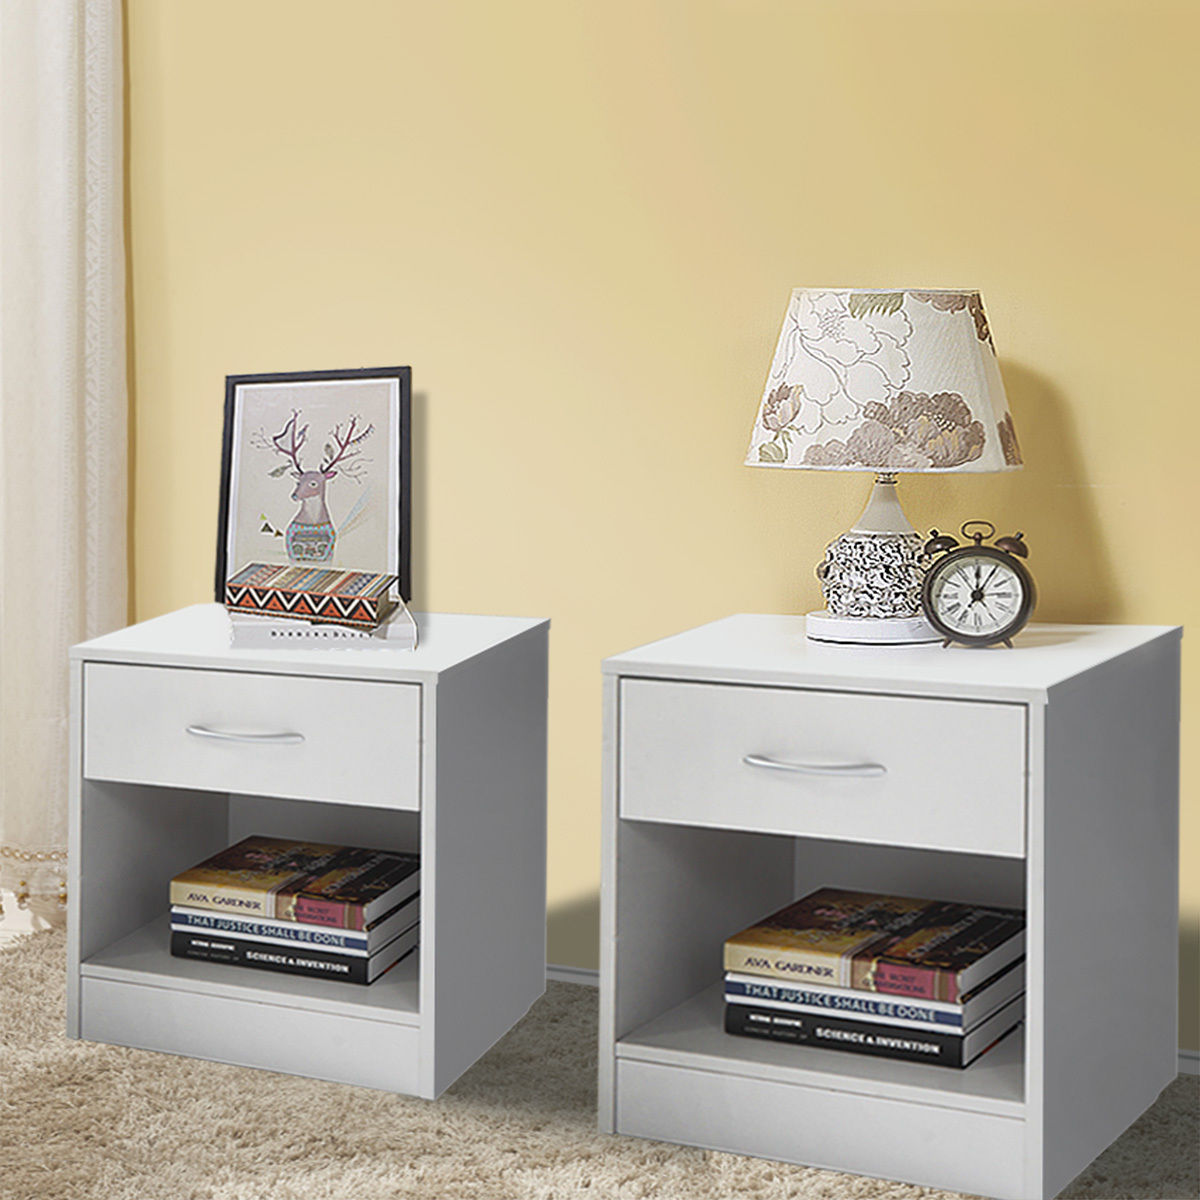 Lazymoon Set of 2 Night Stand Bedroom 2 Layer W/Drawer Bedside End Table Organizer White